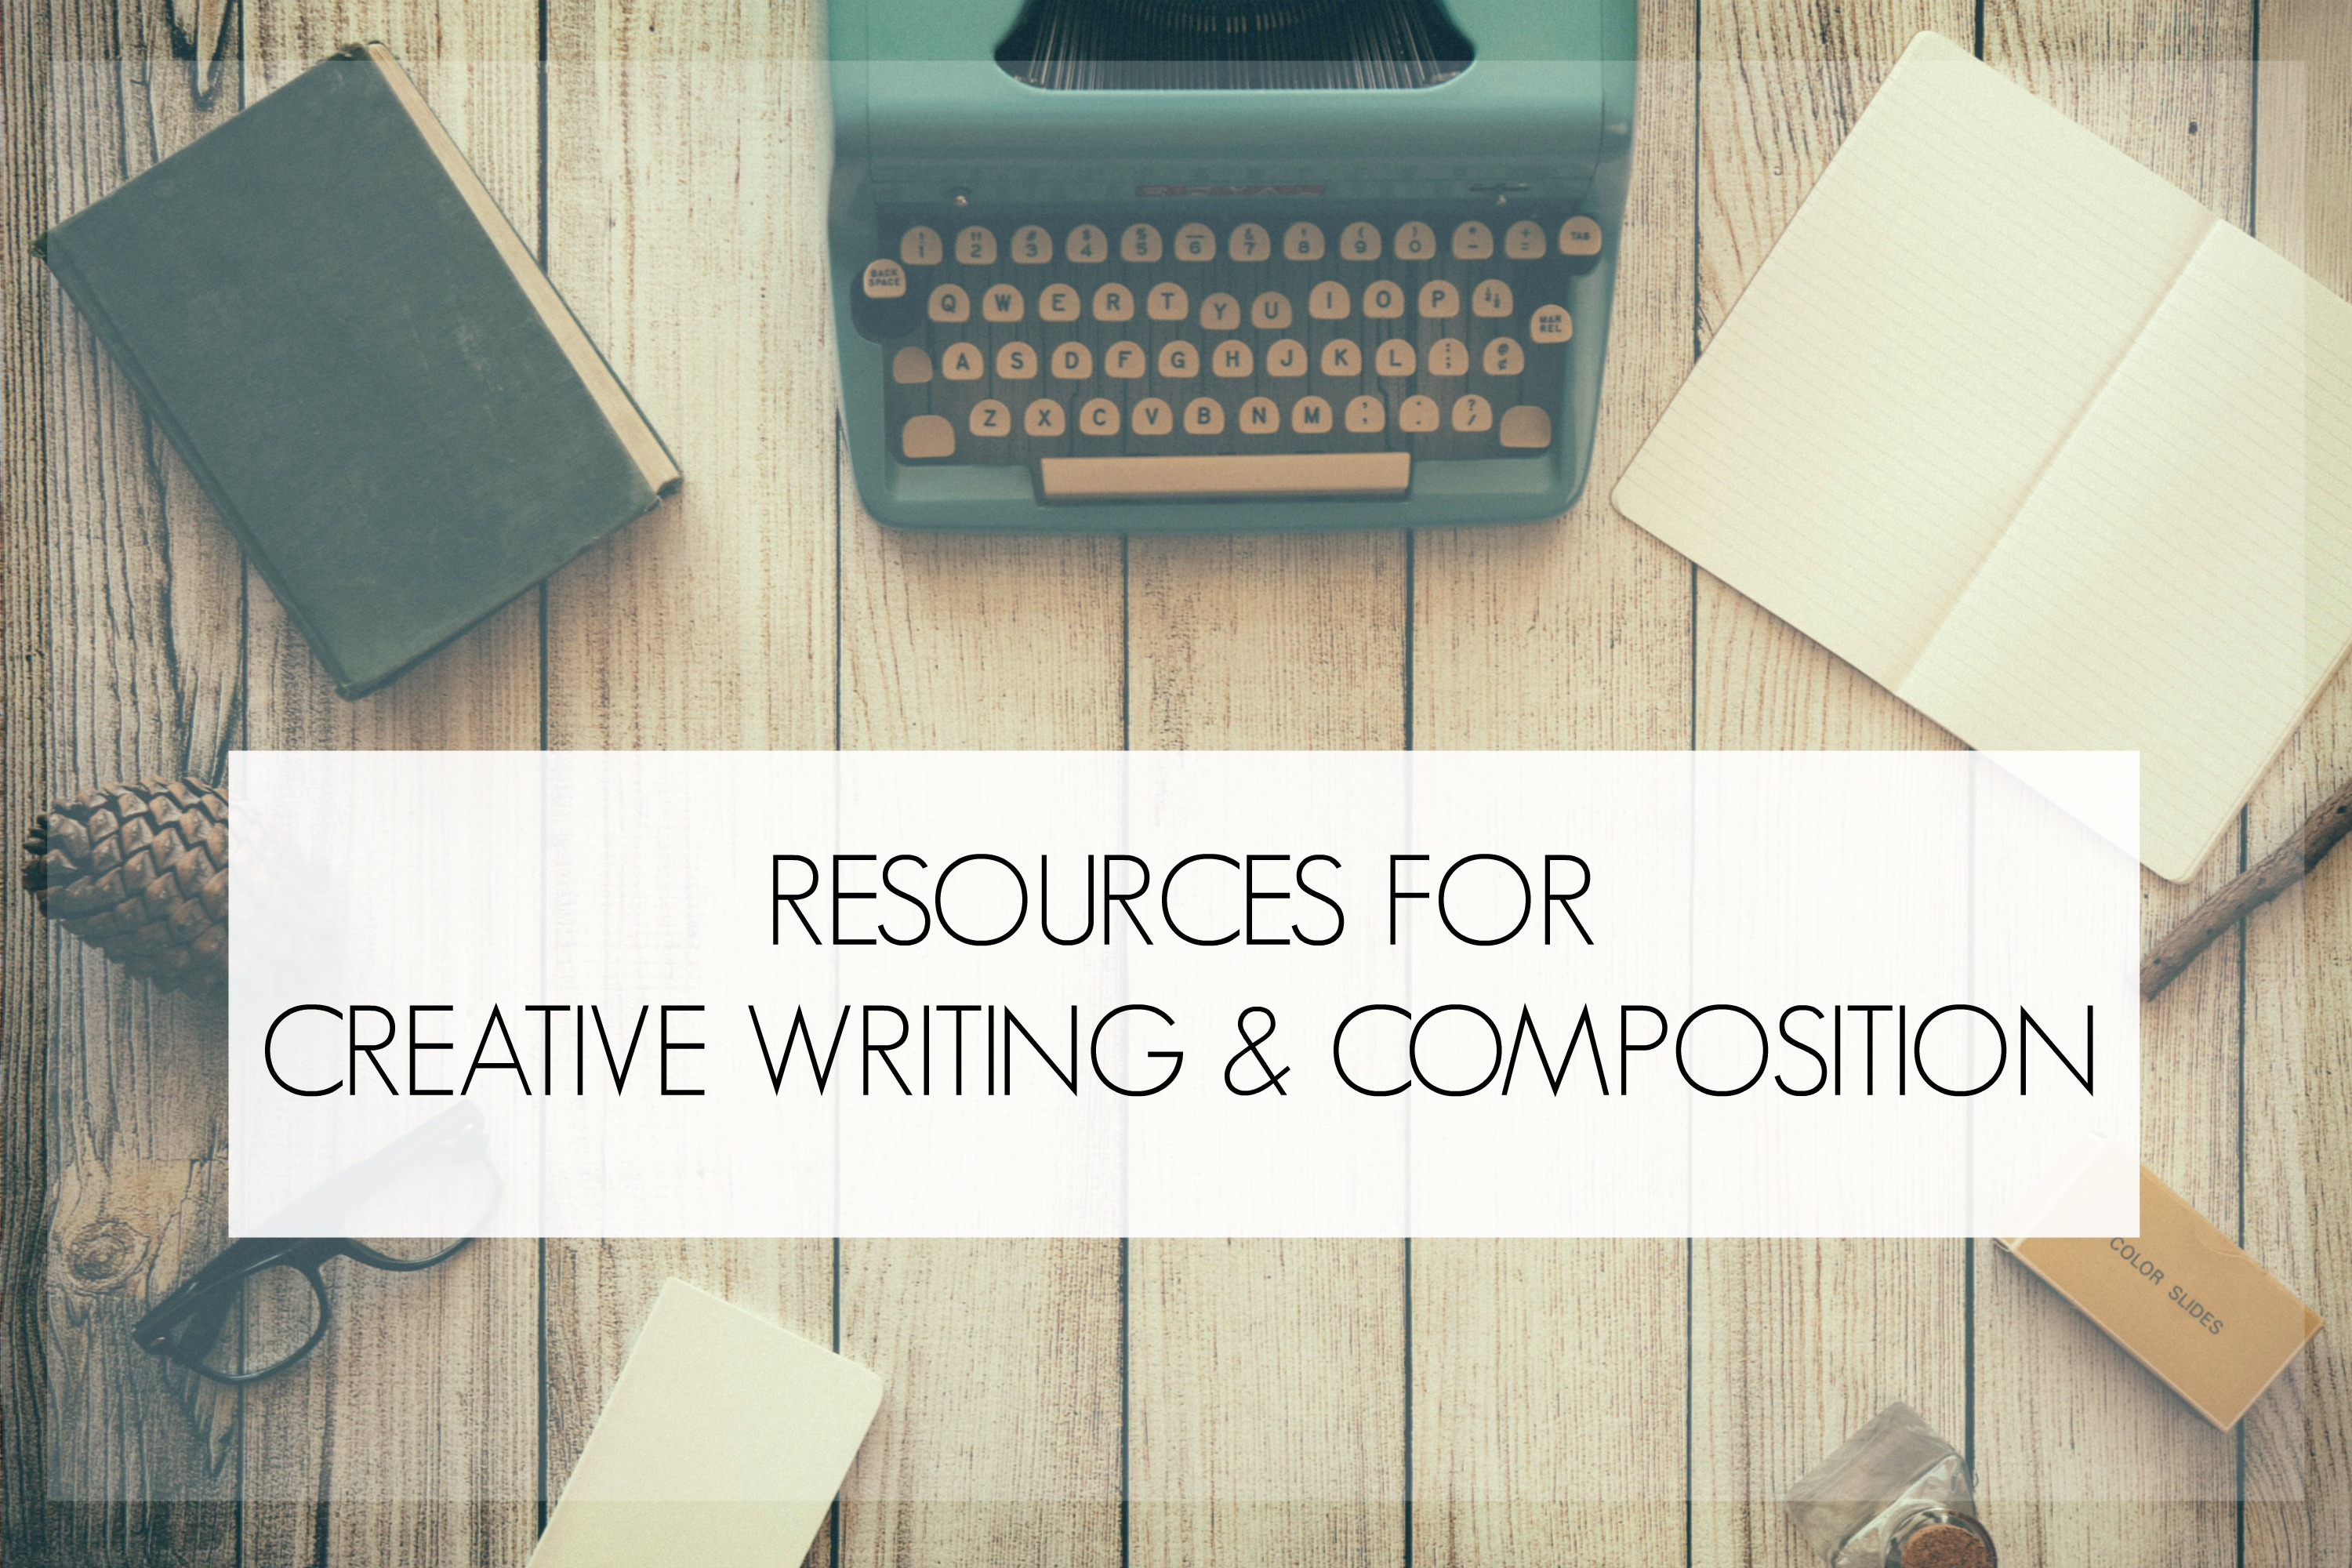 Creative writing and Composition Resources